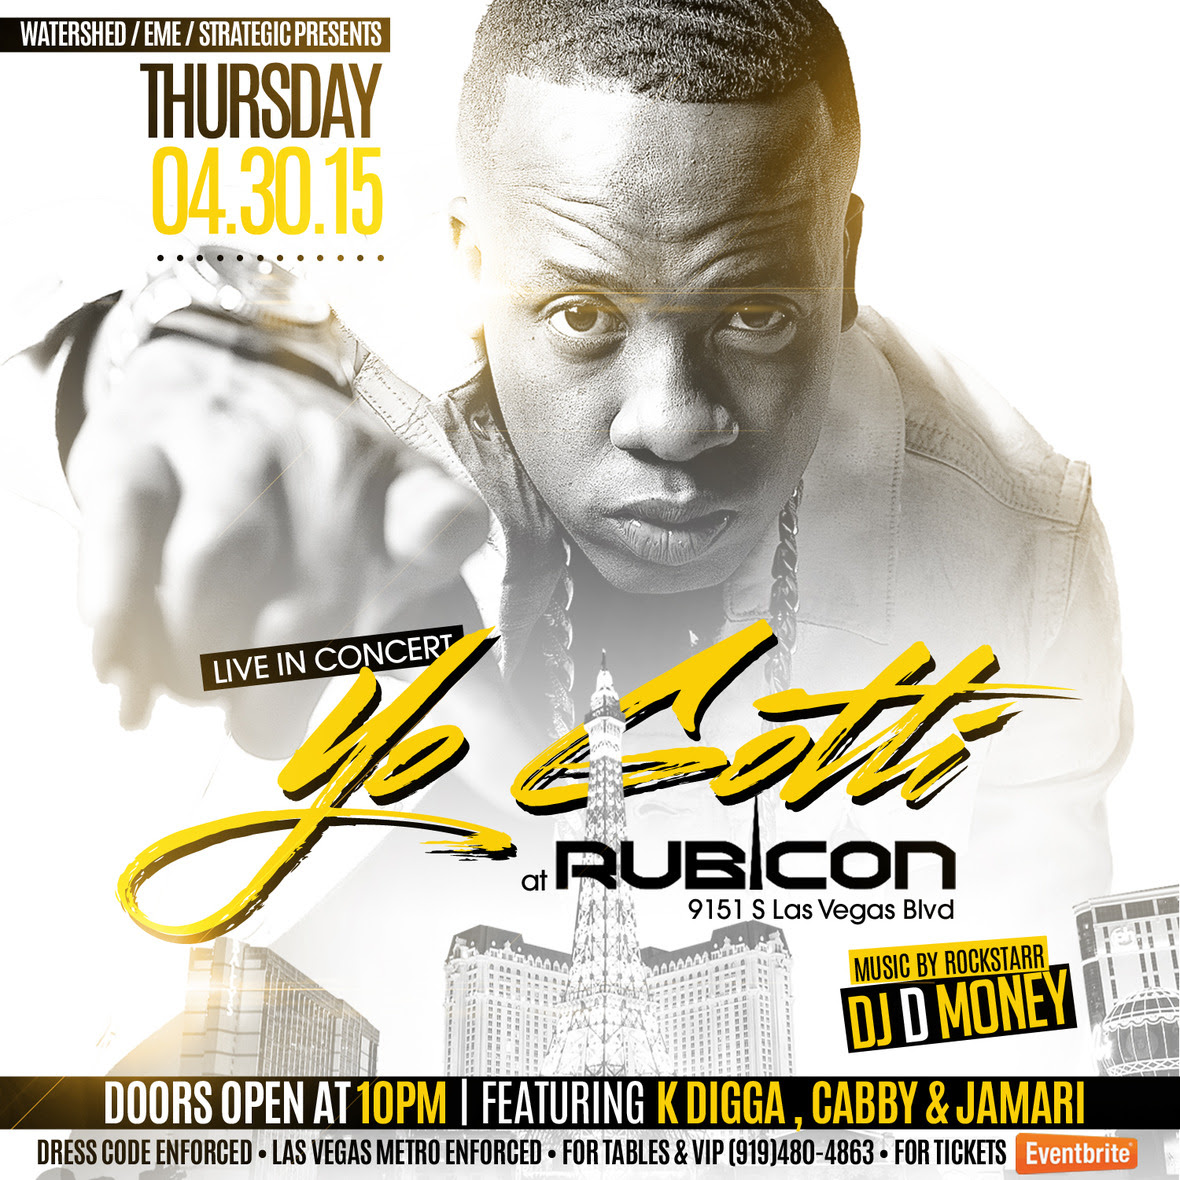 Yo Gotti Performing Live Mayweather vs Pacquiao Fight Weekend at Rubicon Club & Grill | Thursday April, 30th | Tickets On Sale Now 1